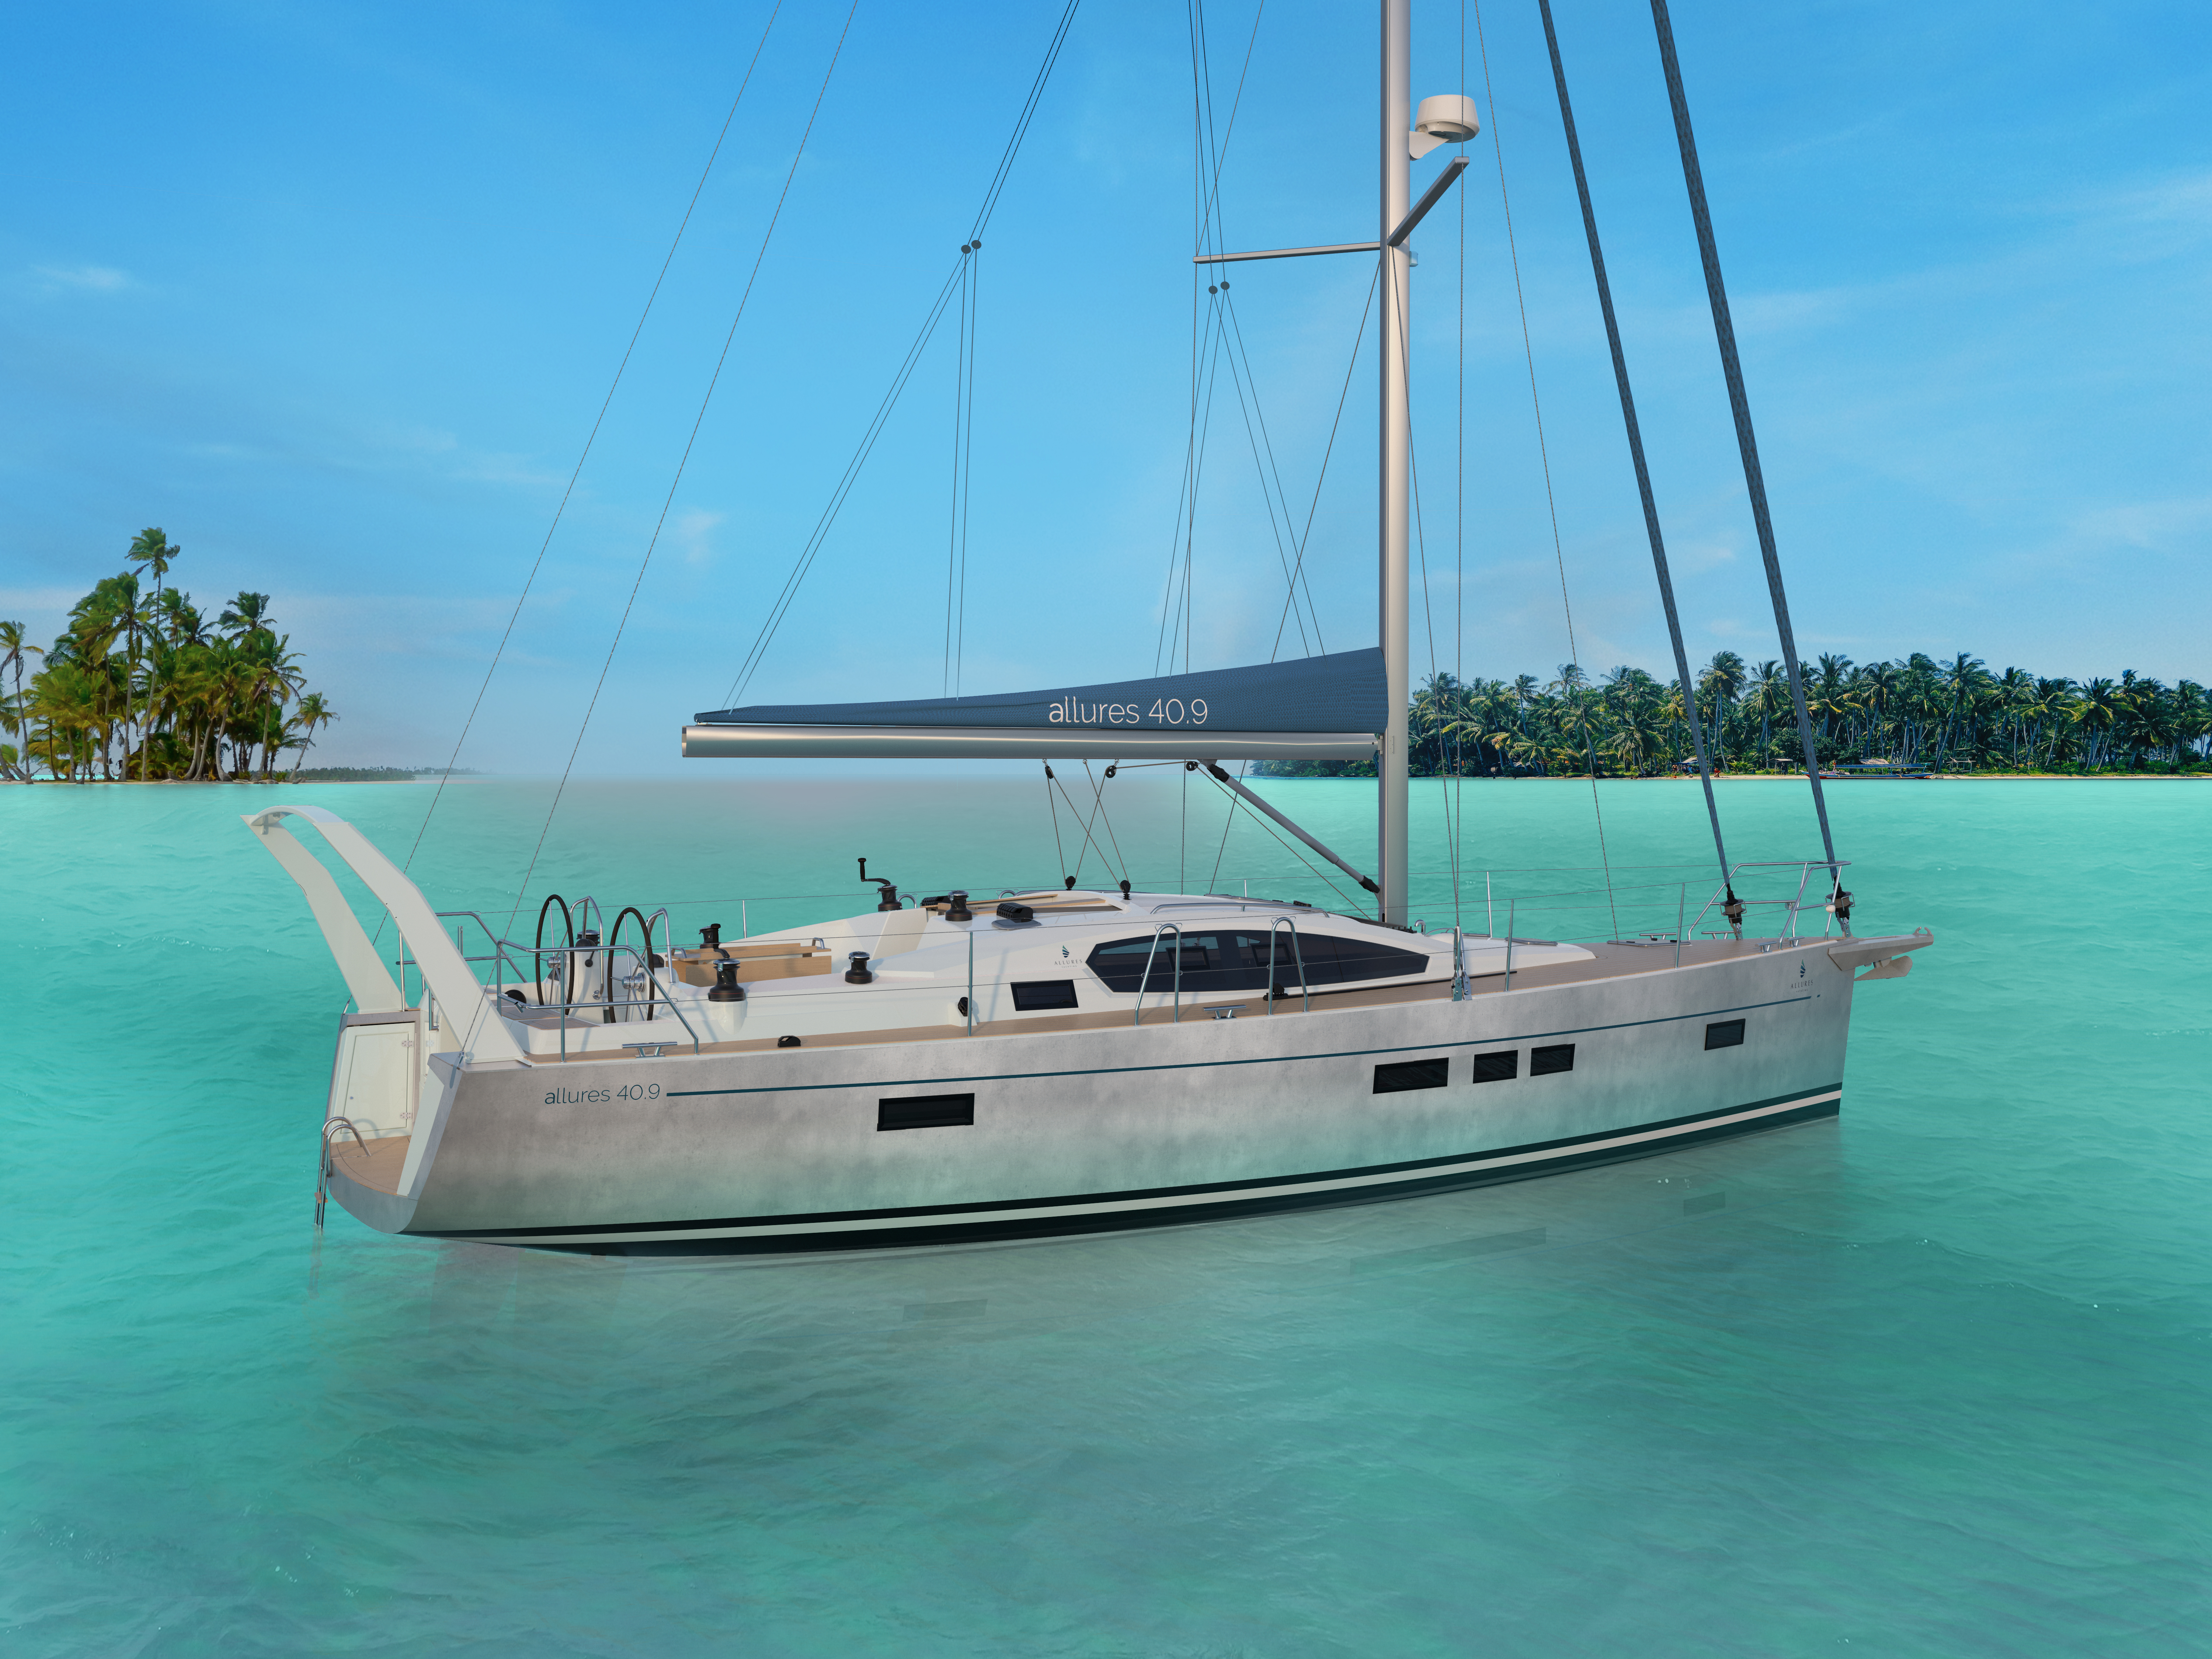 Elegance A La Francaise new allures 40.9 from allures yachting - williams and smithells